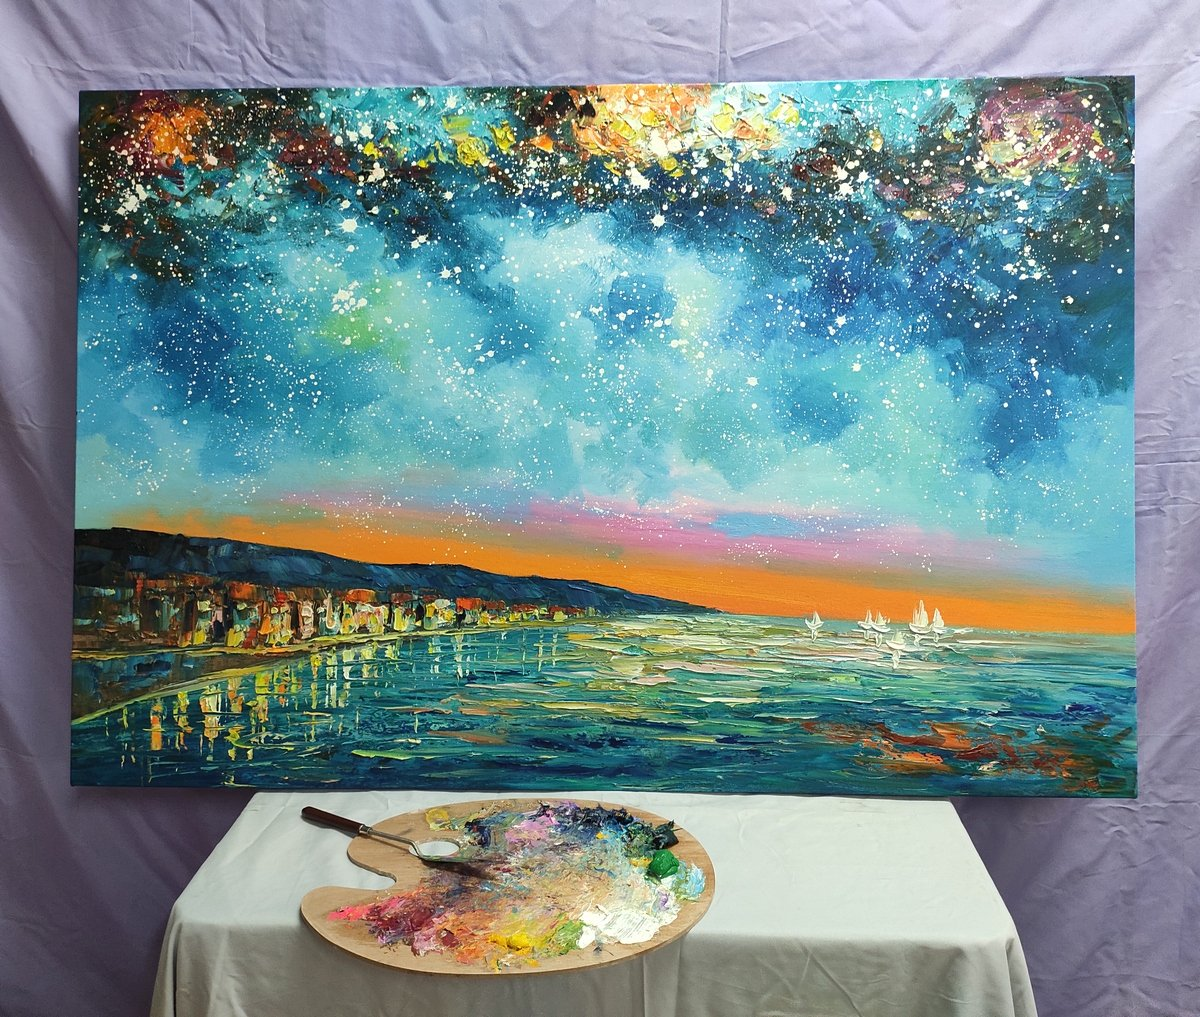 Landscape Canvas Paintings, Starry Night Sky Painting, Buy Paintings Online, Landscape Painting for Living Room, Original Painting on Canvas